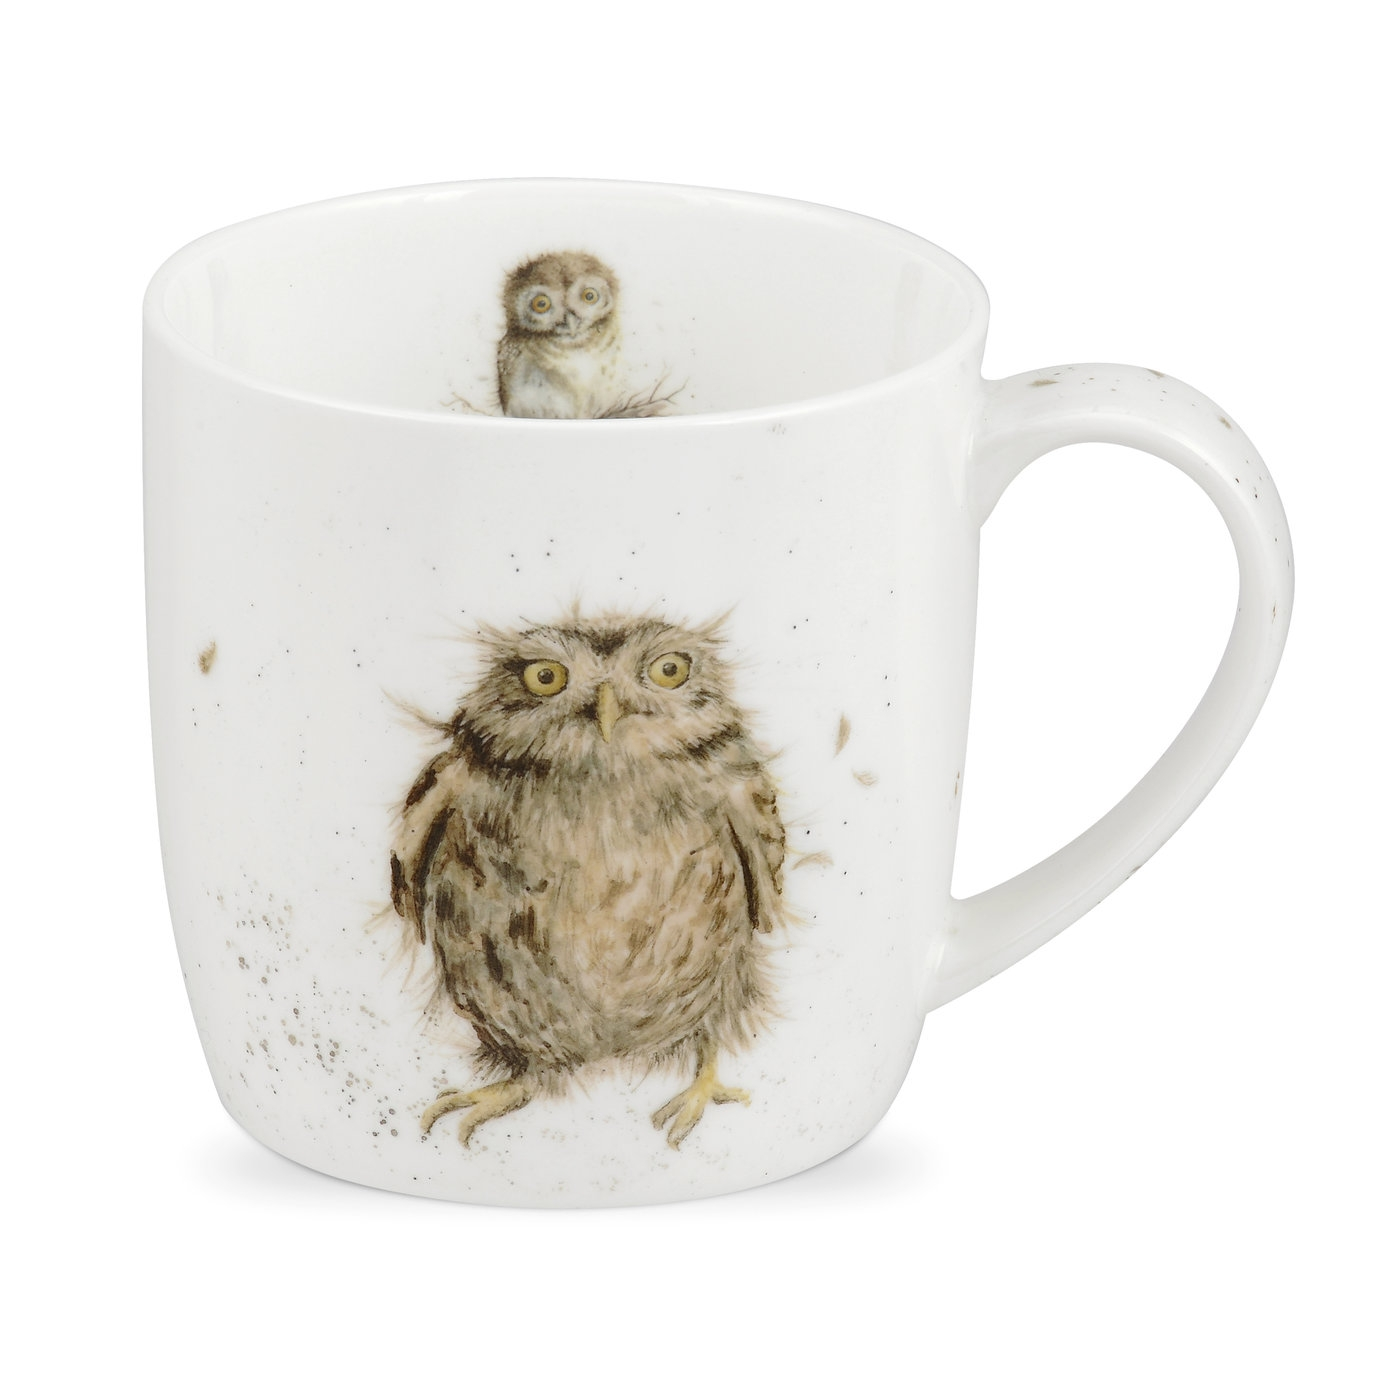 Royal Worcester Wrendale Designs Single What a Hoot (Owl) Fine Bone China Mug image number 0